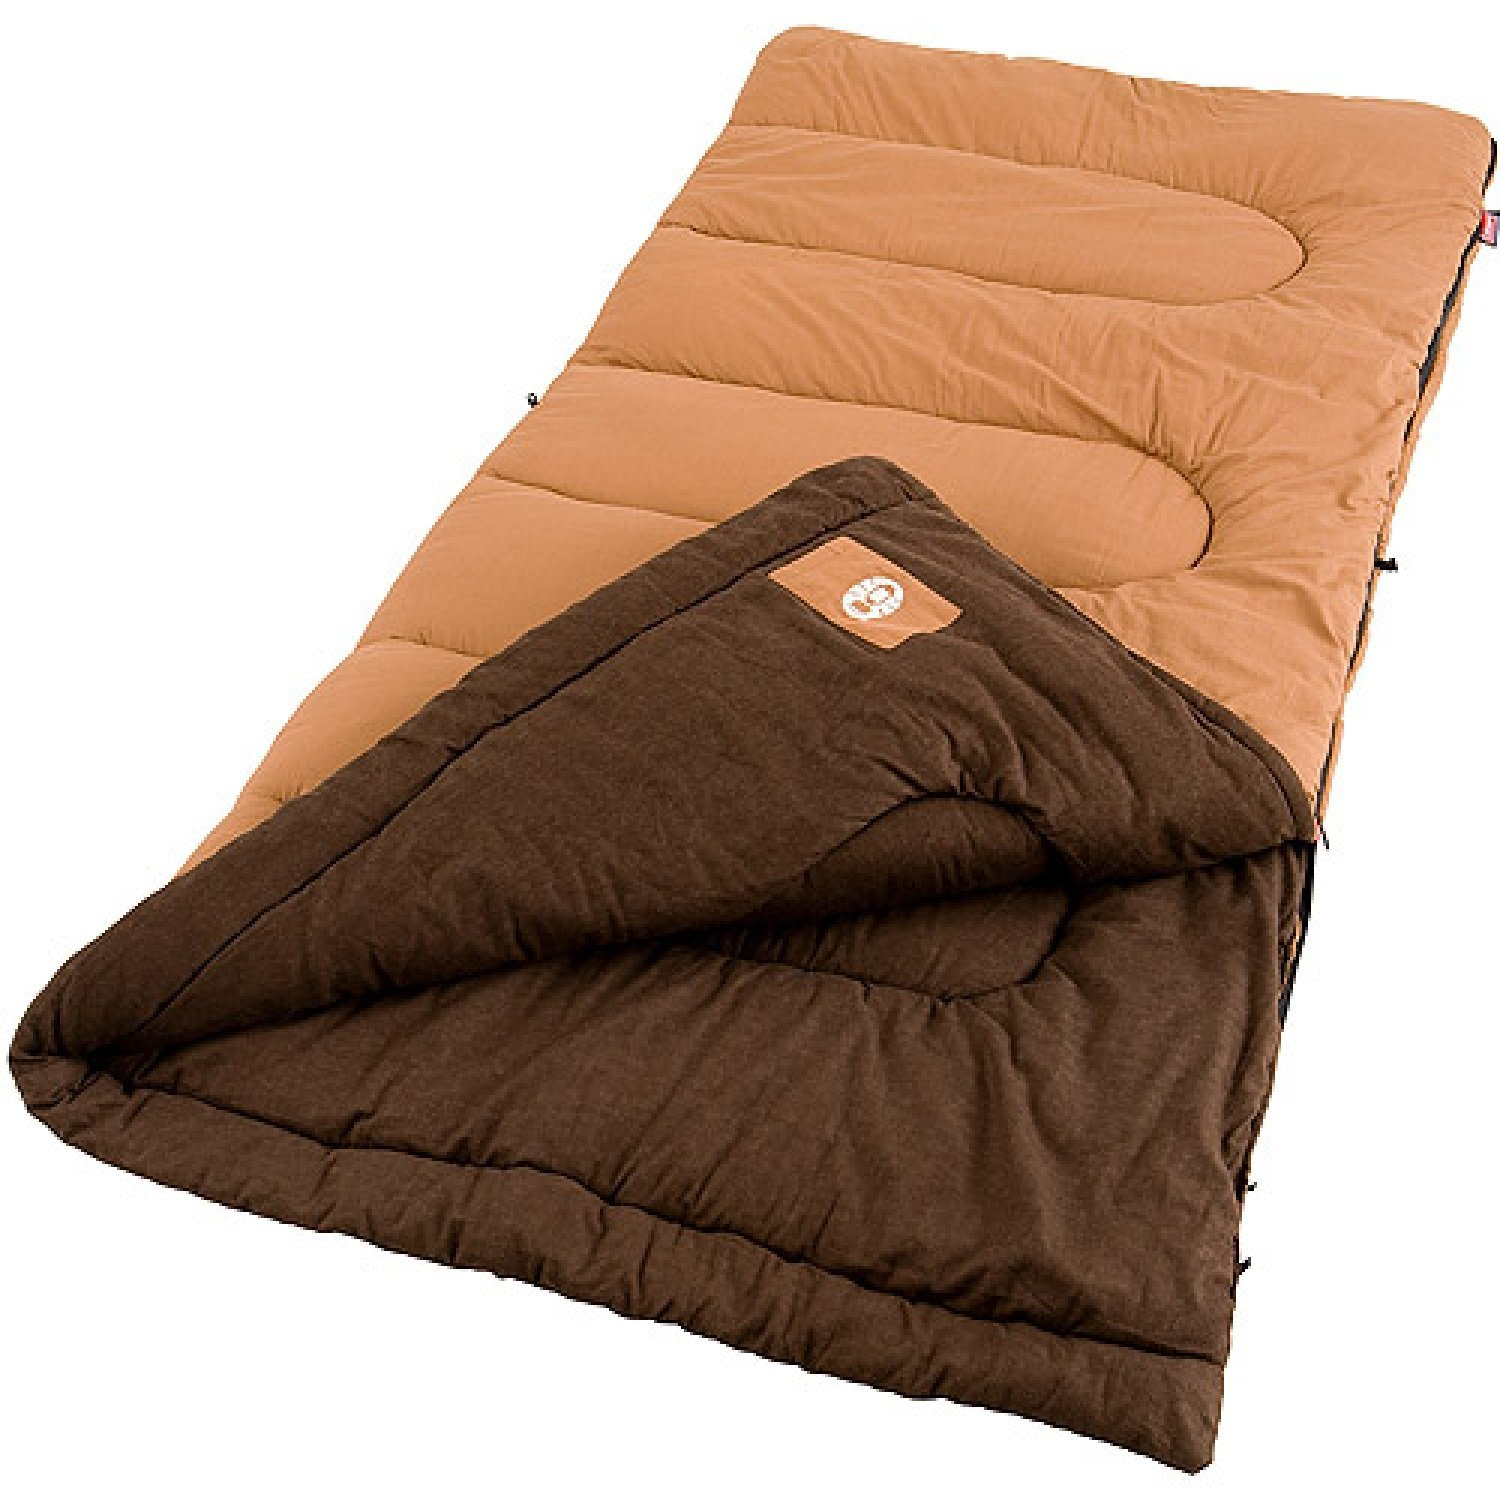 An image of Coleman Dunnock Cold Weather SS-SMS-765711 Men's 20 Degree Cotton Flannel Sleeping Bag